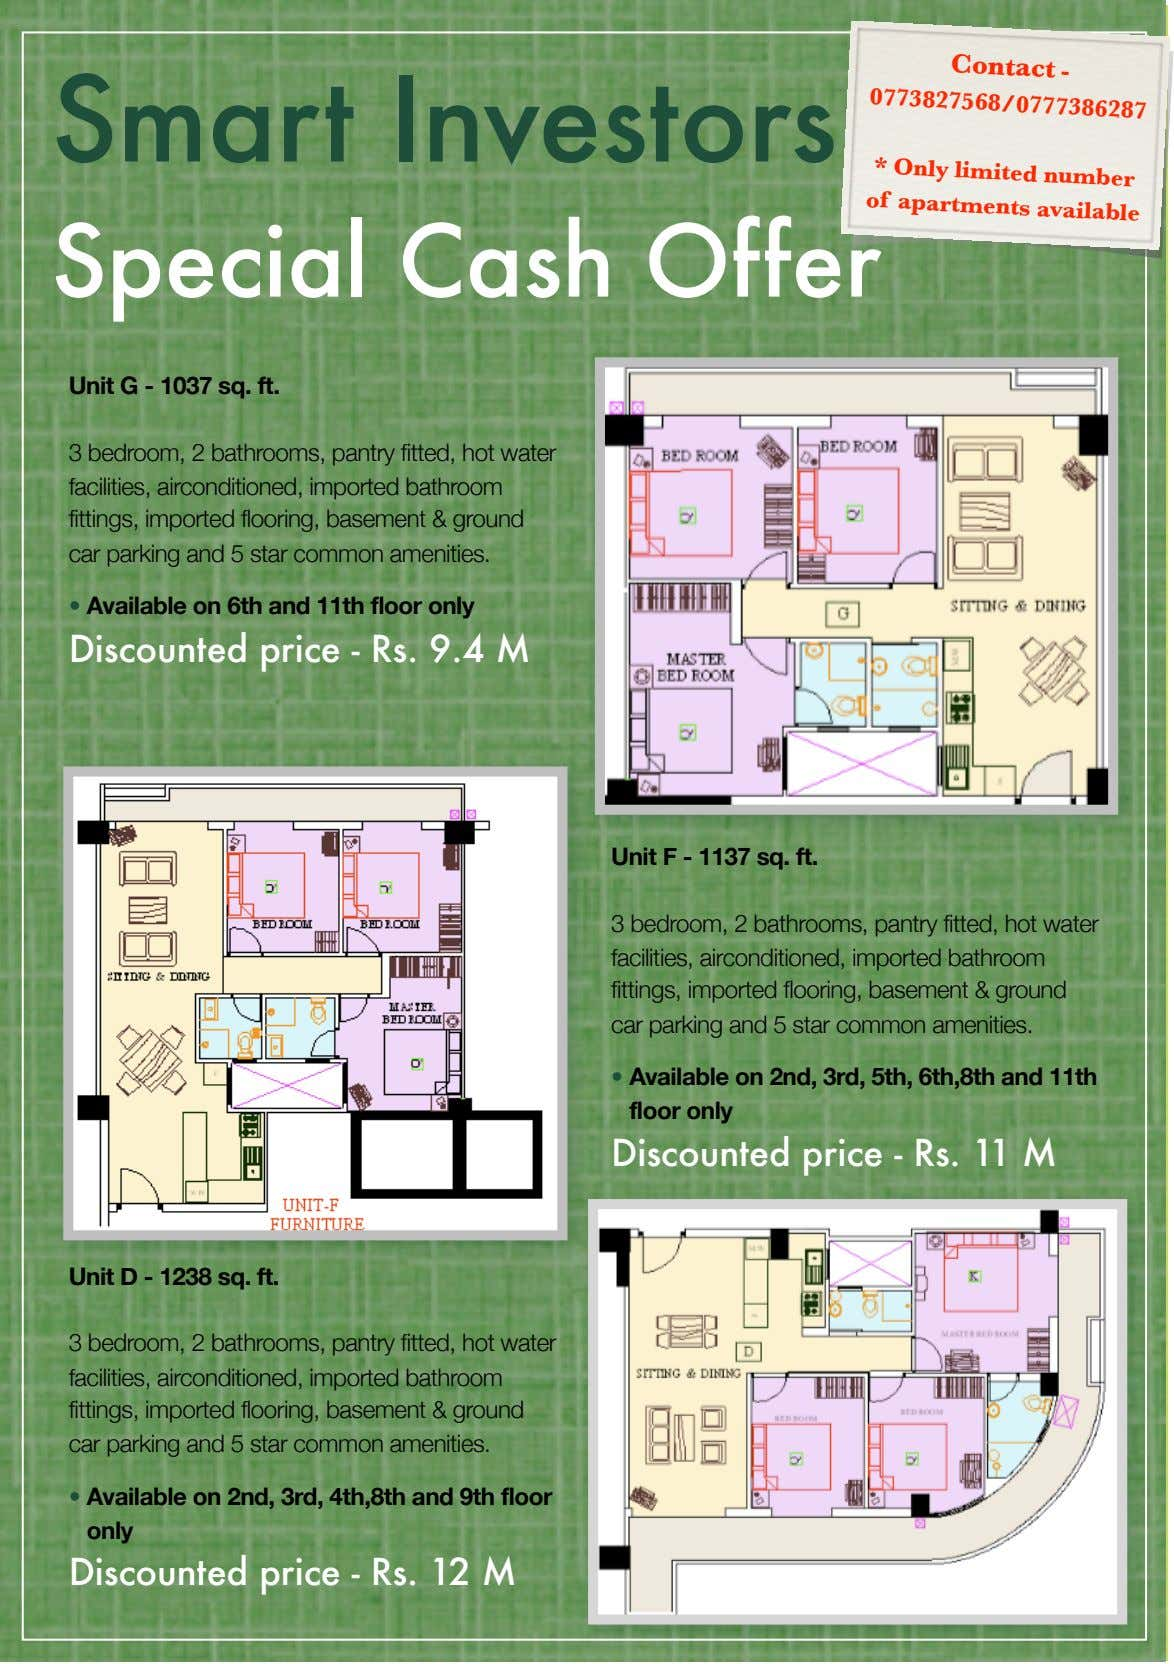 Contact - 0773827568/0777386287 Smart Investors * Only number of apartments limited available Special Cash Offer